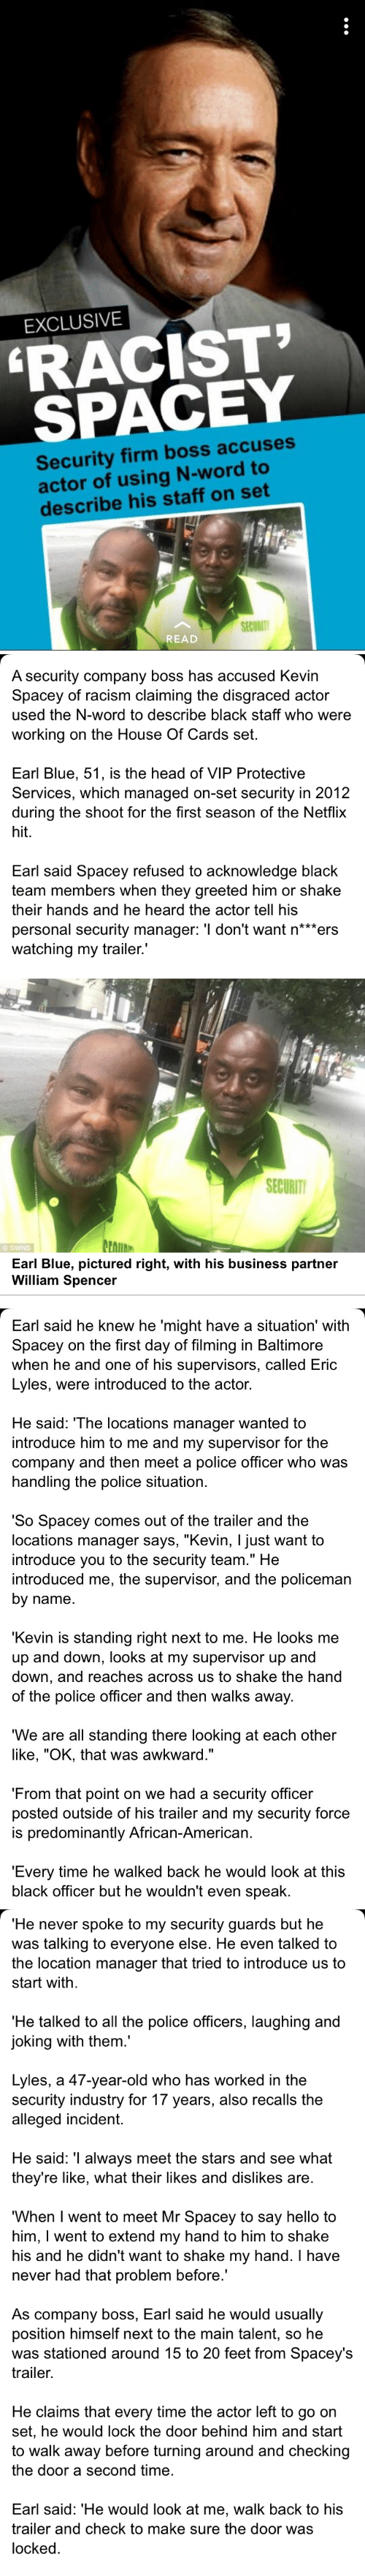 """House of Cards: EXCLUSIVE  RACIST  SPACEY  Security firm boss accuses  actor of using N-word to  describe his staff on set  SECURIT  READ   A security company boss has accused Kevin  Spacey of racism claiming the disgraced actor  used the N-word to describe black staff who were  working on the House Of Cards set.  Earl Blue, 51, is the head of VIP Protective  Services, which managed on-set security in 2012  during the shoot for the first season of the Netflix  hit.  Earl said Spacey refused to acknowledge black  team members when they greeted him or shake  their hands and he heard the actor tell his  personal security manager: 'l don't want n*""""ers  watching my trailer.""""  SECURIT  EAIIAN  Earl Blue, pictured right, with his business partner  William Spencer   Earl said he knew he 'might have a situation' with  Spacey on the first day of filming in Baltimore  when he and one of his supervisors, called Eric  Lyles, were introduced to the actor.  He said: 'The locations manager wanted to  introduce him to me and my supervisor for the  company and then meet a police officer who was  handling the police situation.  'So Spacey comes out of the trailer and the  locations manager says, """"Kevin, I just want to  introduce you to the security team."""" He  introduced me, the supervisor, and the policeman  by name.  'Kevin is standing right next to me. He looks me  up and down, looks at my supervisor up and  down, and reaches across us to shake the hand  of the police officer and then walks away  We are all standing there looking at each other  like, """"OK, that was awkward.""""  'From that point on we had a security officer  posted outside of his trailer and my security force  is predominantly African-American.  'Every time he walked back he would look at this  black officer but he wouldn't even speak.   He never spoke to my security guards but he  was talking to everyone else. He even talked to  the location manager that tried to introduce us to  start with  'He talked to all the polic"""